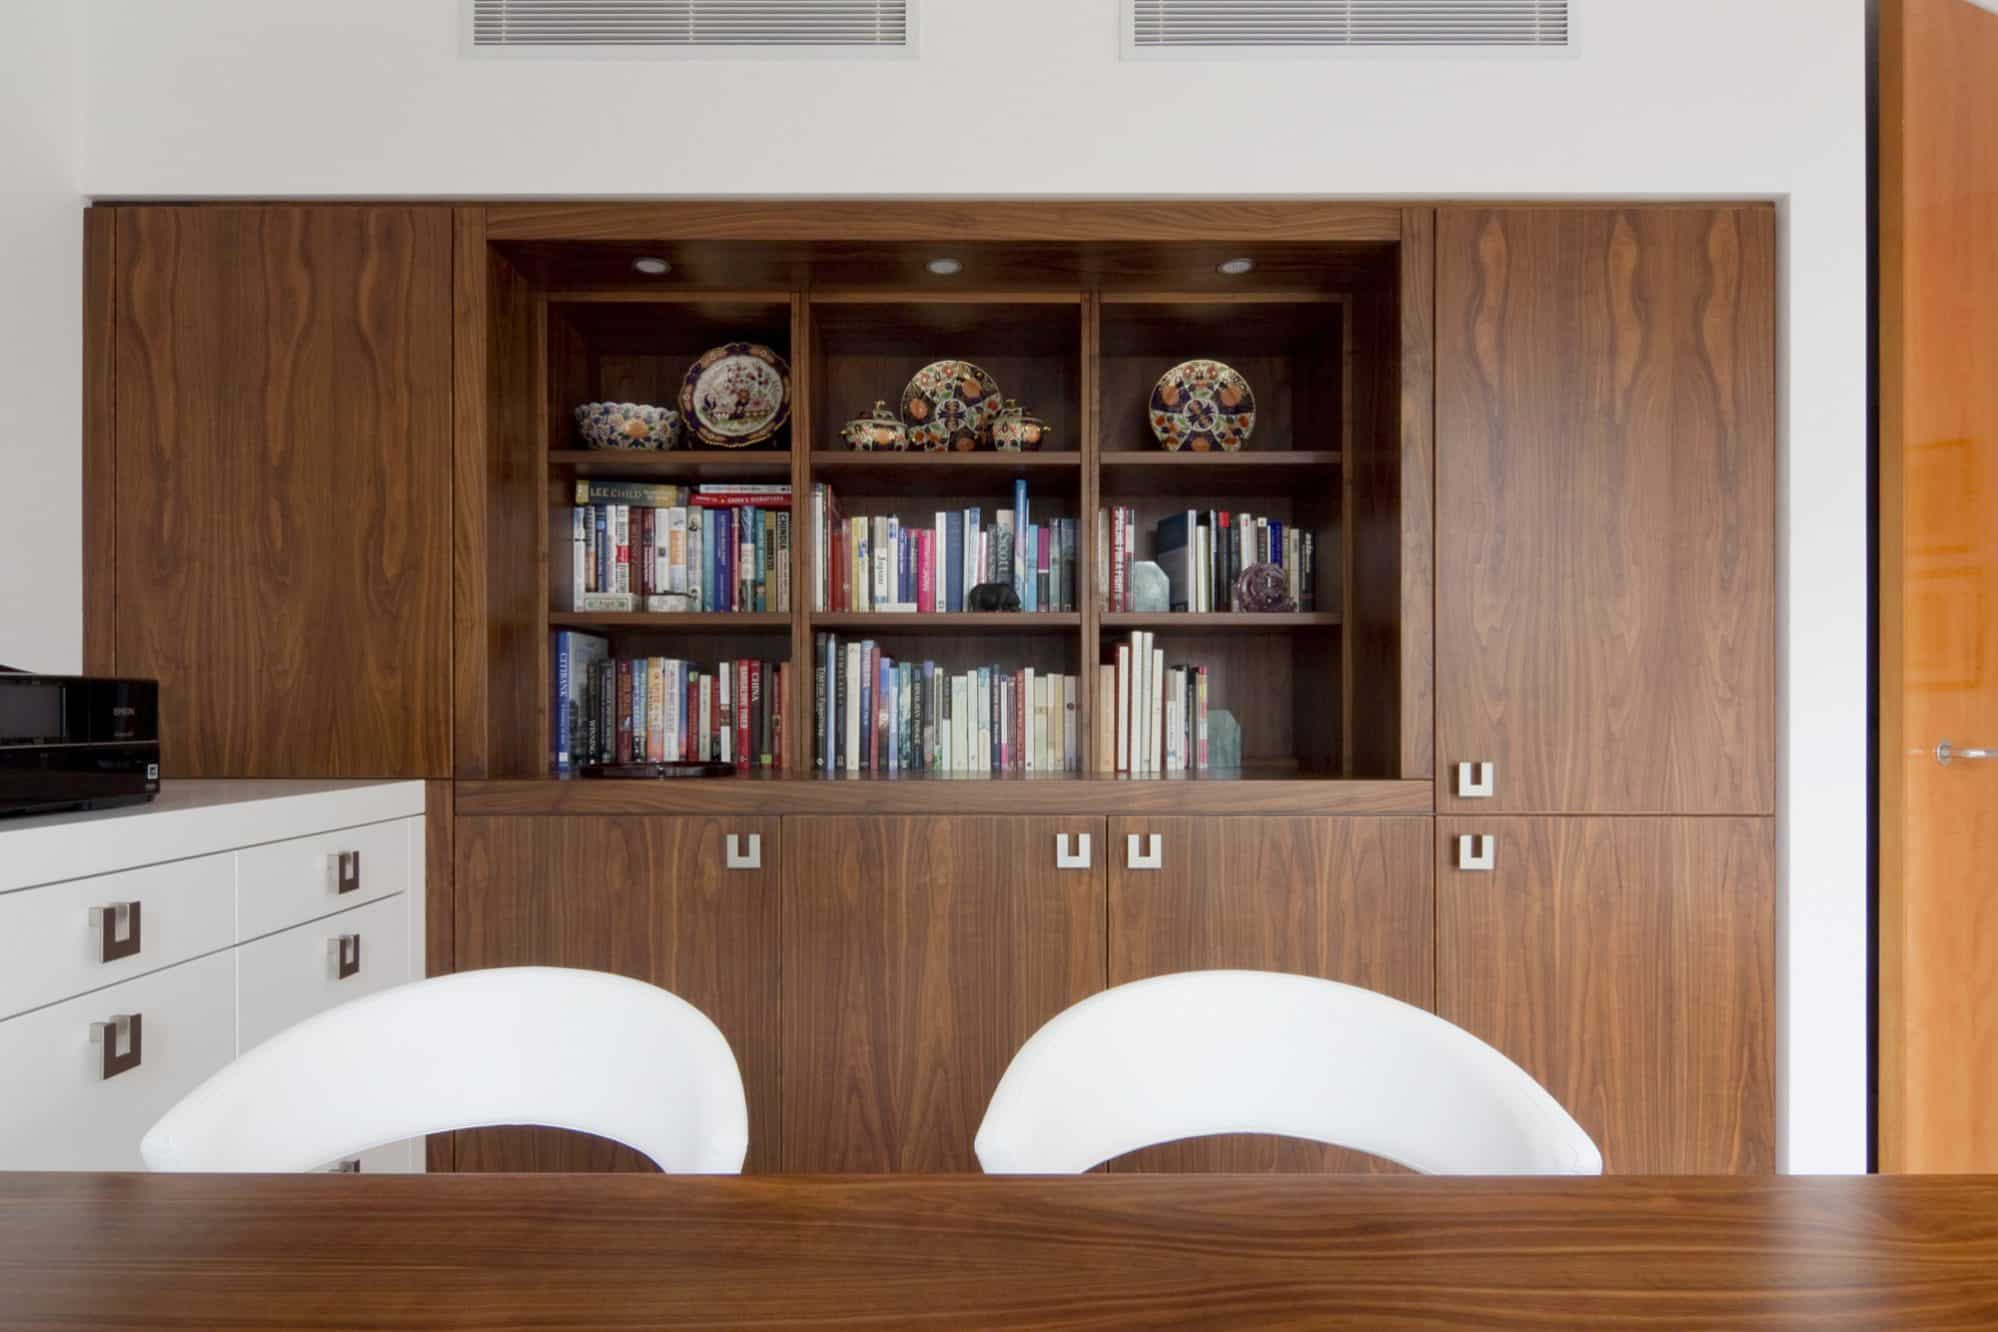 Beautifully crafted joinery